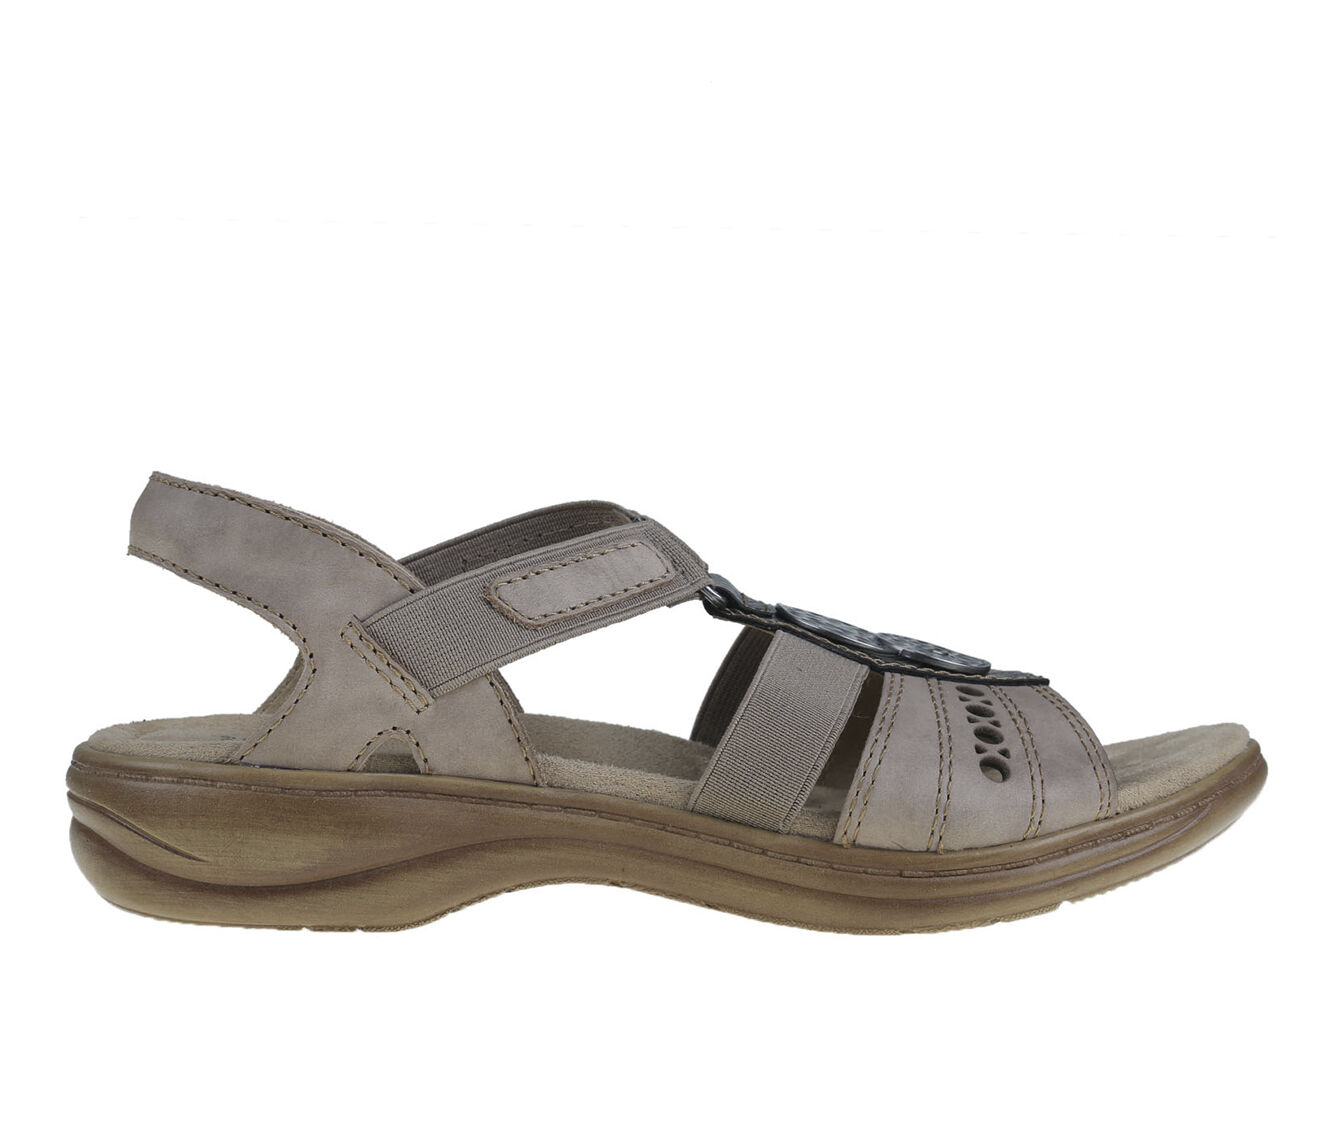 Women's Earth Origins Stella Sasha Sandals Coco